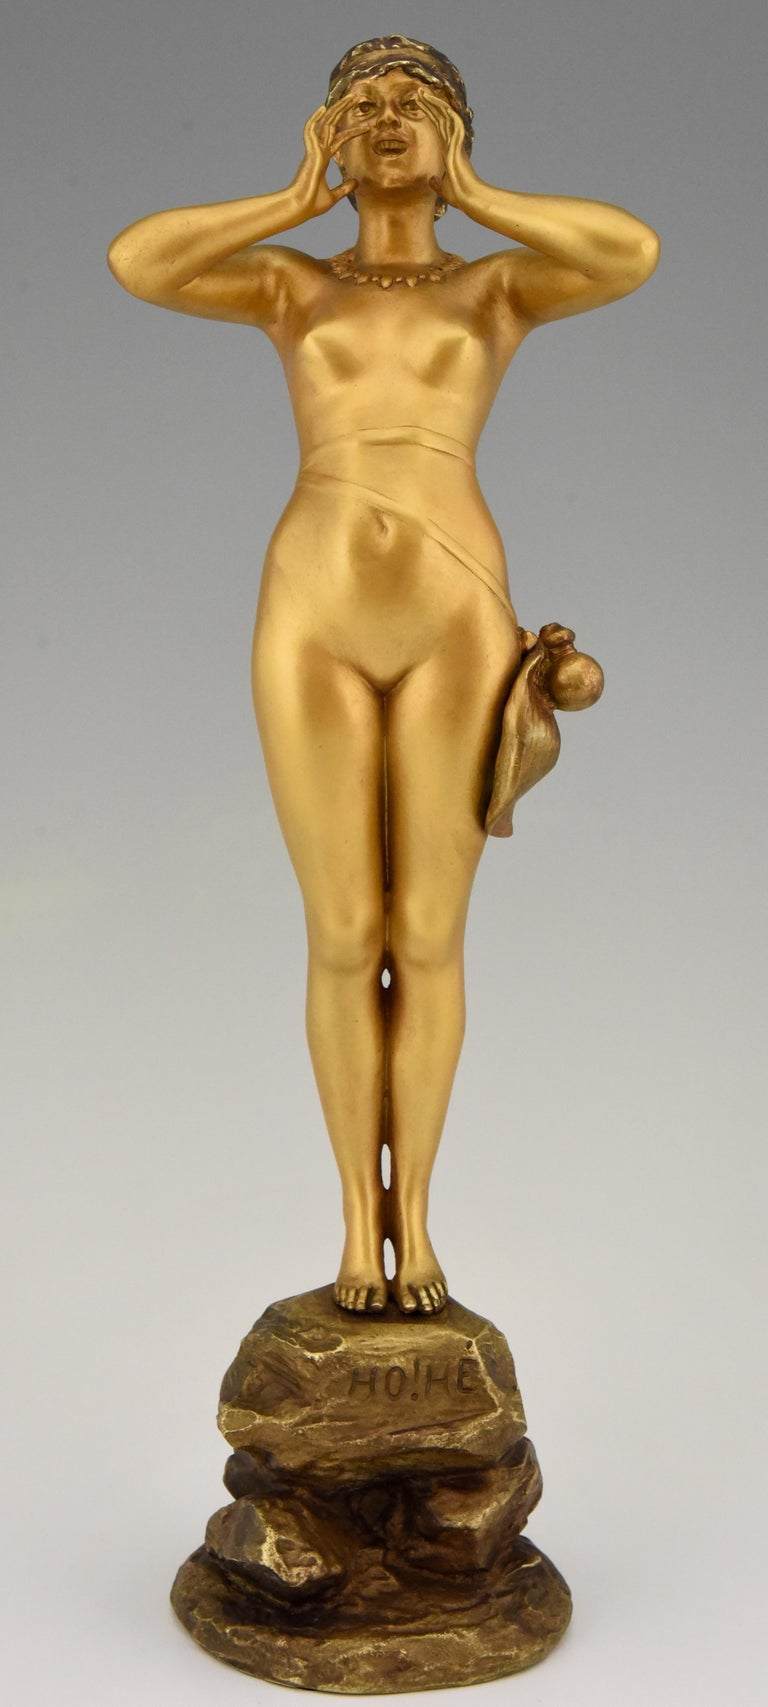 Art Nouveau Bronze Sculpture Calling Nude Lady Alfred Grevin and Friedrich Beer 2